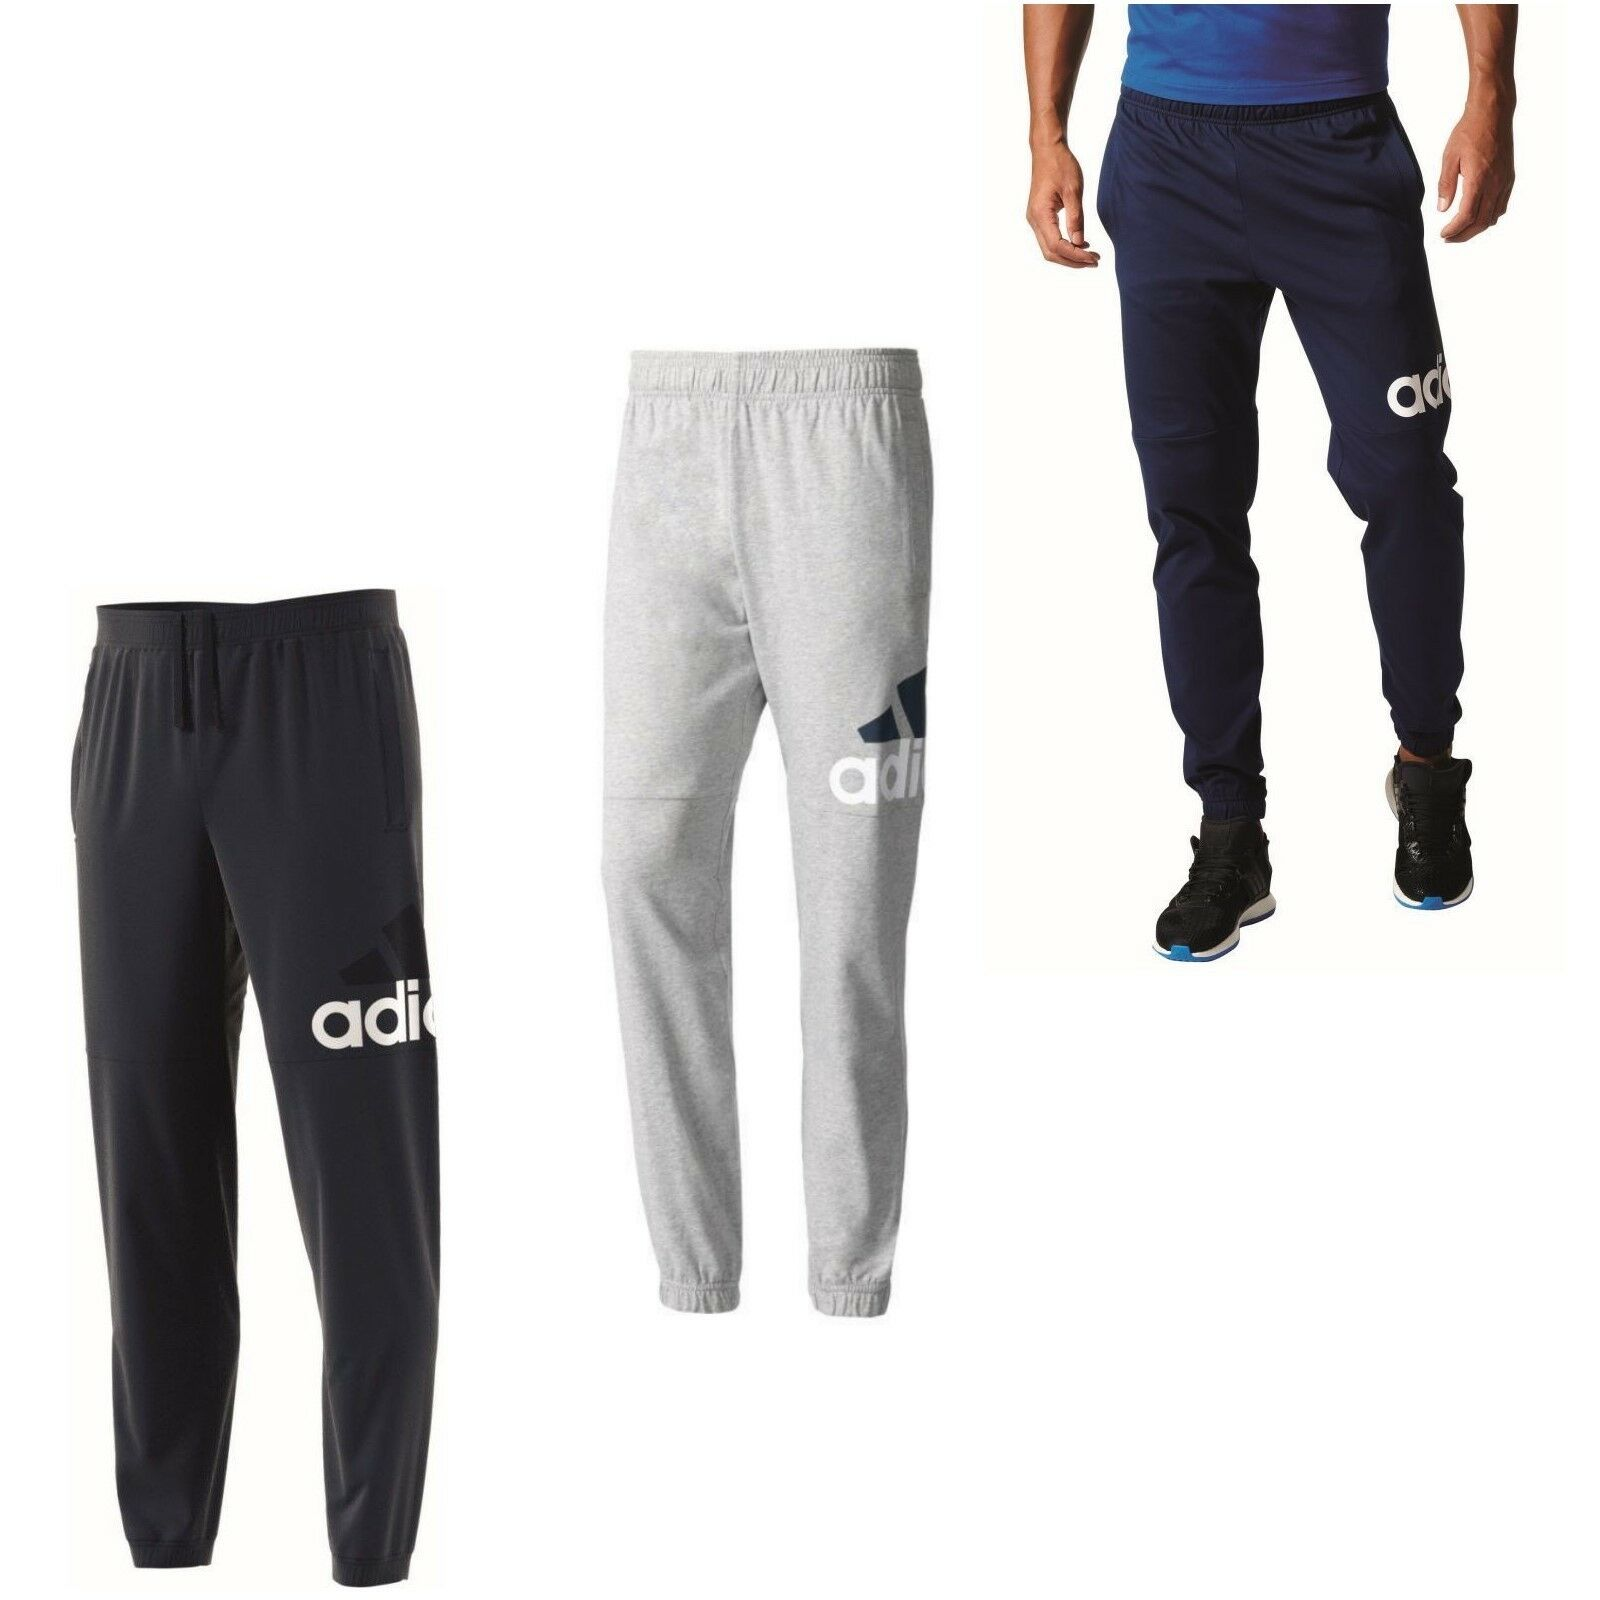 39fc224f7d8d adidas Essentials Performance Logo Jogginghose Sporthose Trainingshose  Herren